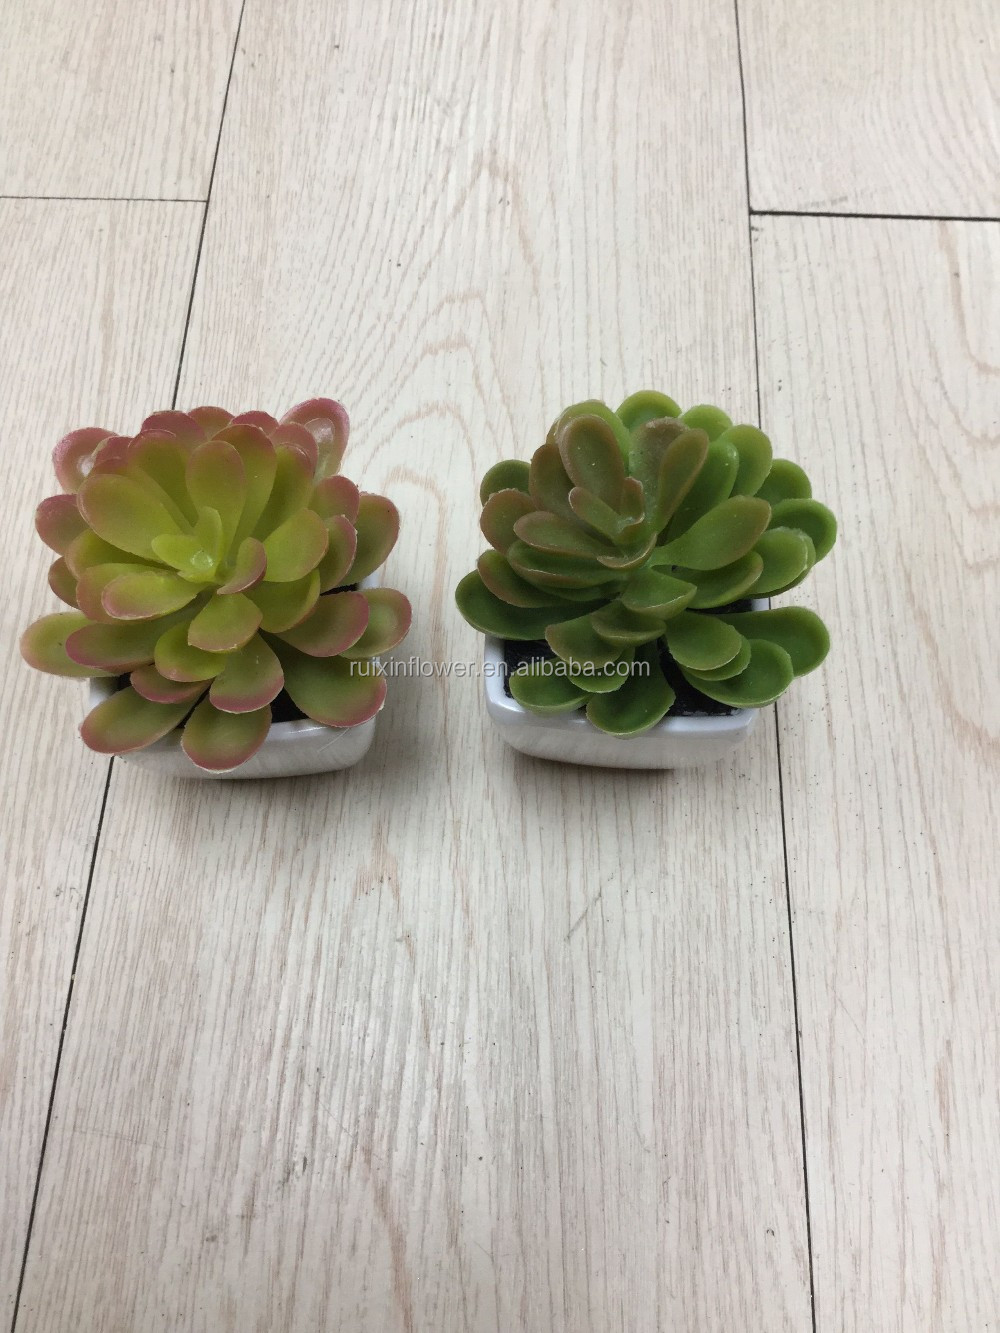 Artificial potted succulents plants, bonsai succulents plants,table small plastic plant pots